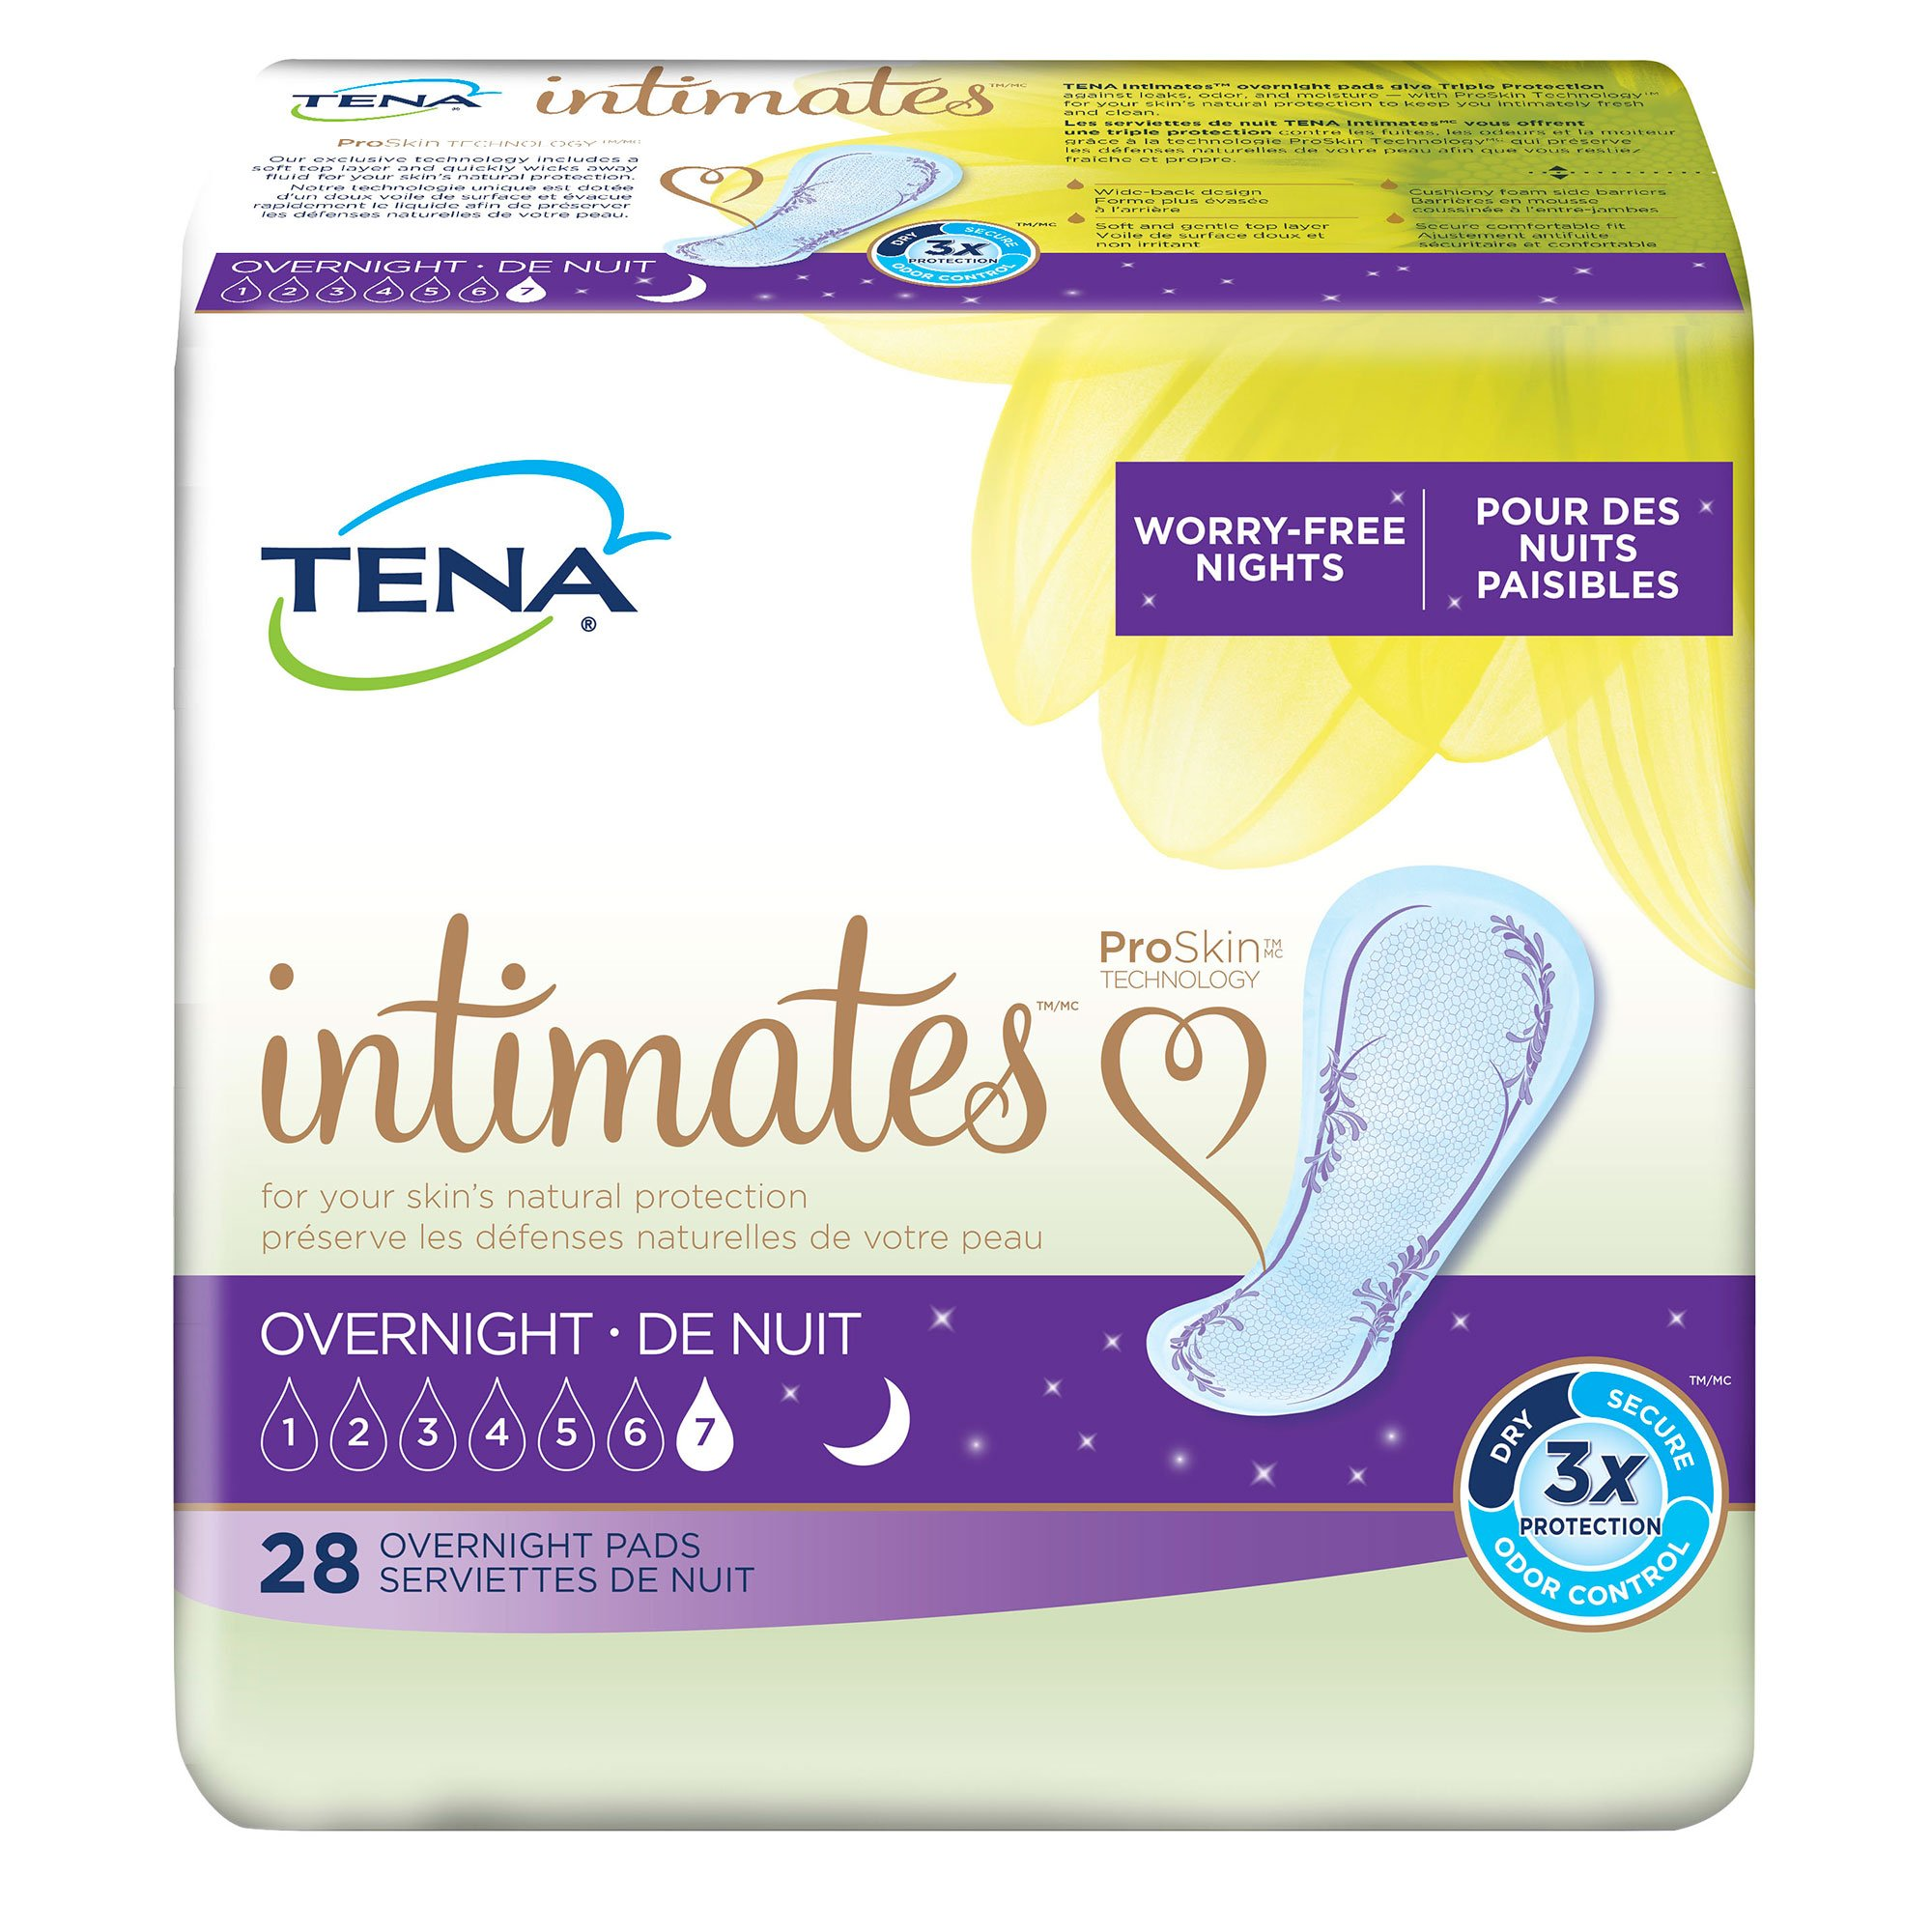 TENA Incontinence Pads for Women, Overnight, 28 Count (Pack of 3) product